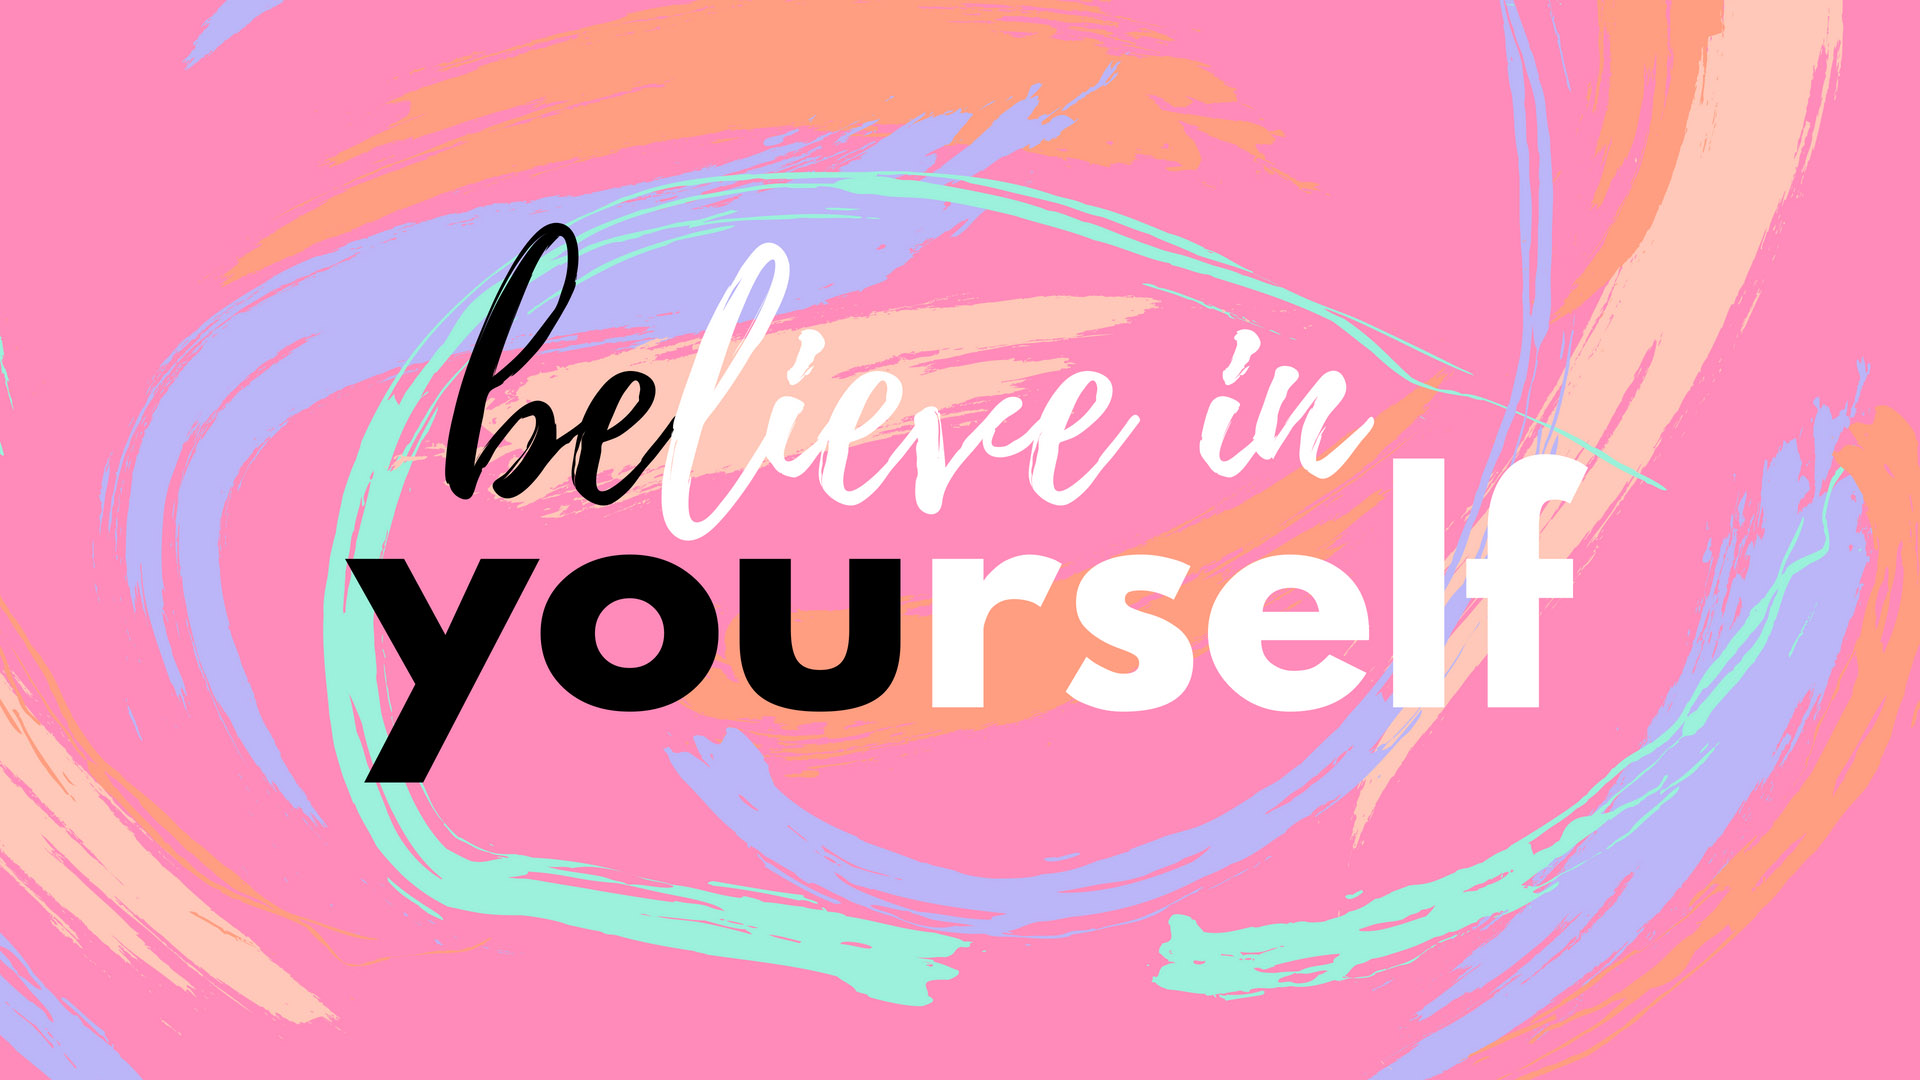 Believe in yourself | Girl Boss Mac Wallpapers by PreppyWallpapers.com